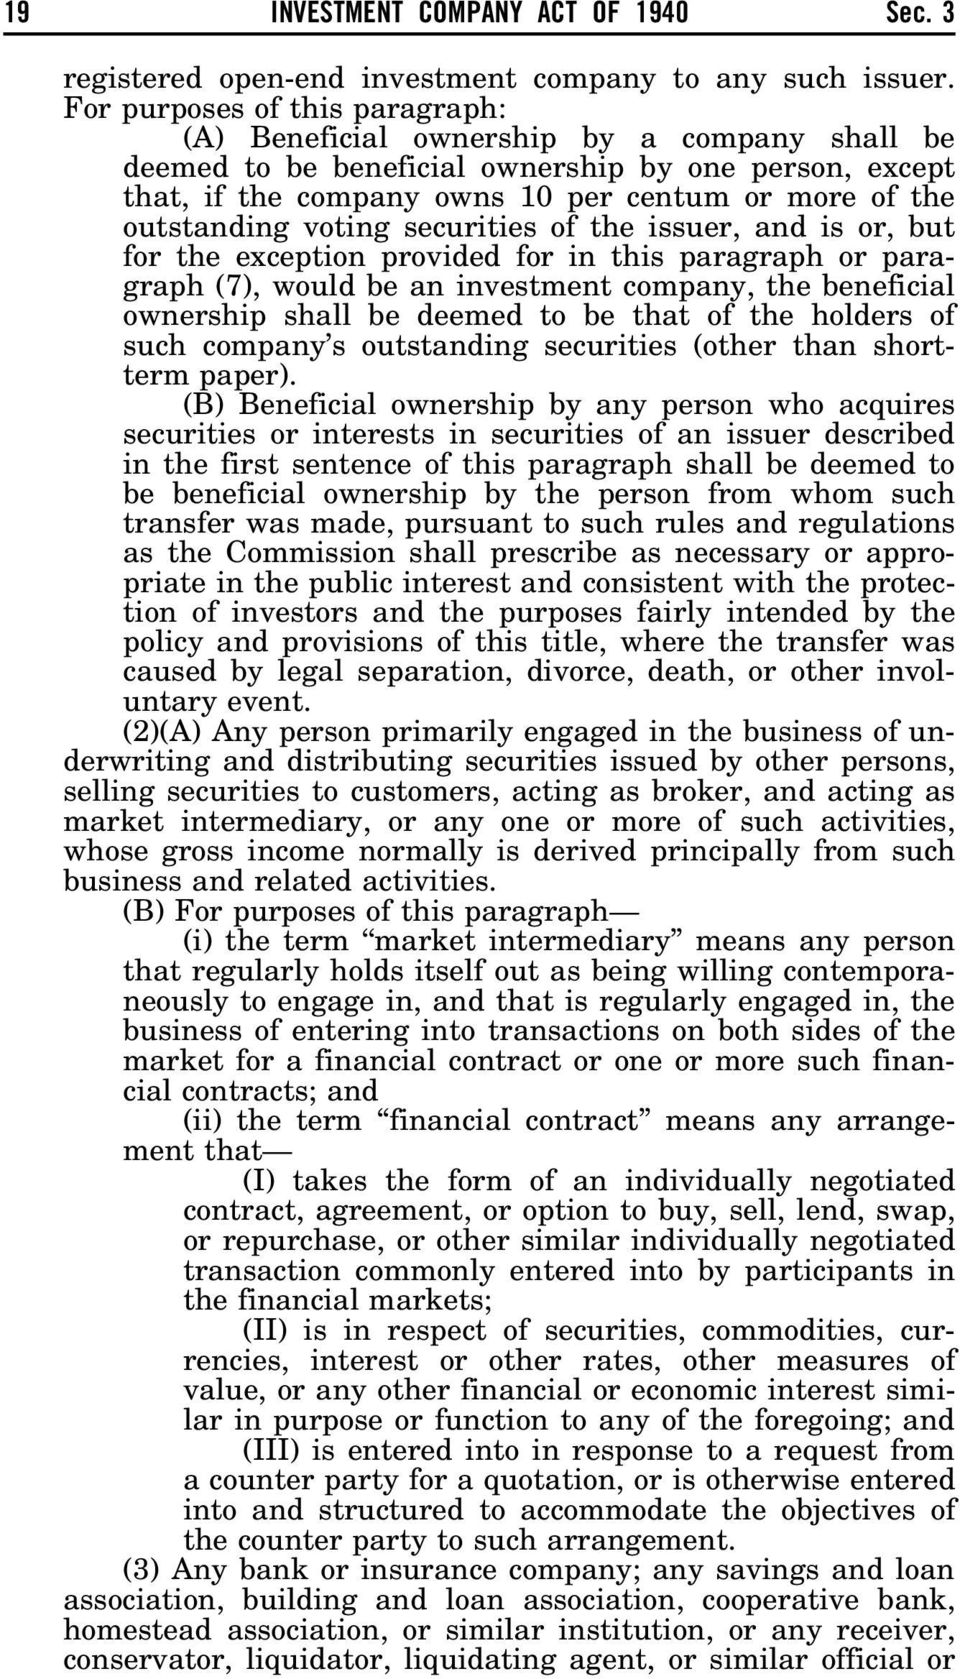 outstanding voting securities of the issuer, and is or, but for the exception provided for in this paragraph or paragraph (7), would be an investment company, the beneficial ownership shall be deemed